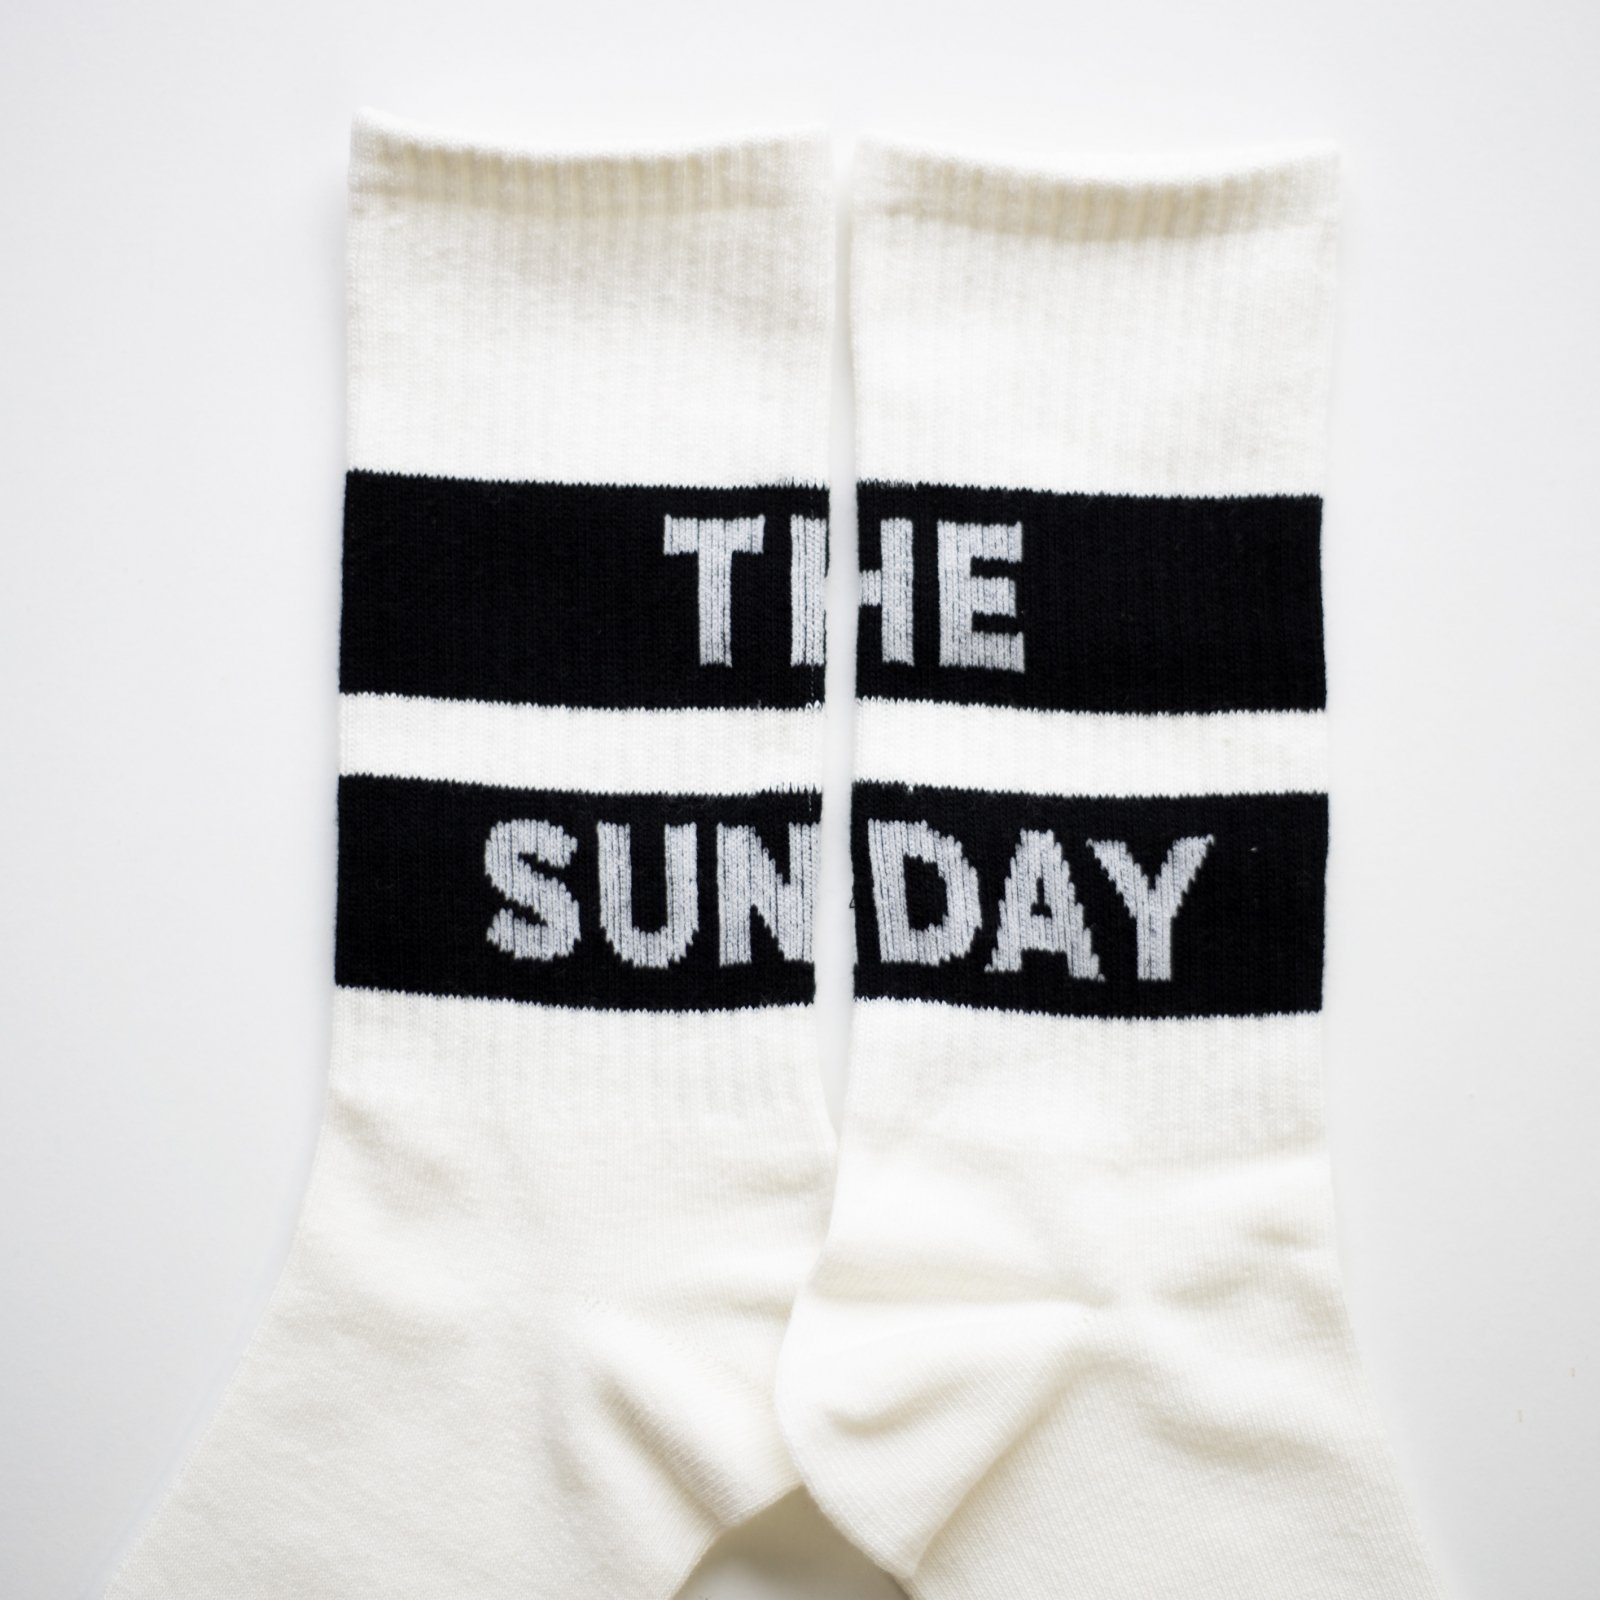 <img class='new_mark_img1' src='https://img.shop-pro.jp/img/new/icons14.gif' style='border:none;display:inline;margin:0px;padding:0px;width:auto;' />『THE SUNDAY』ソックス